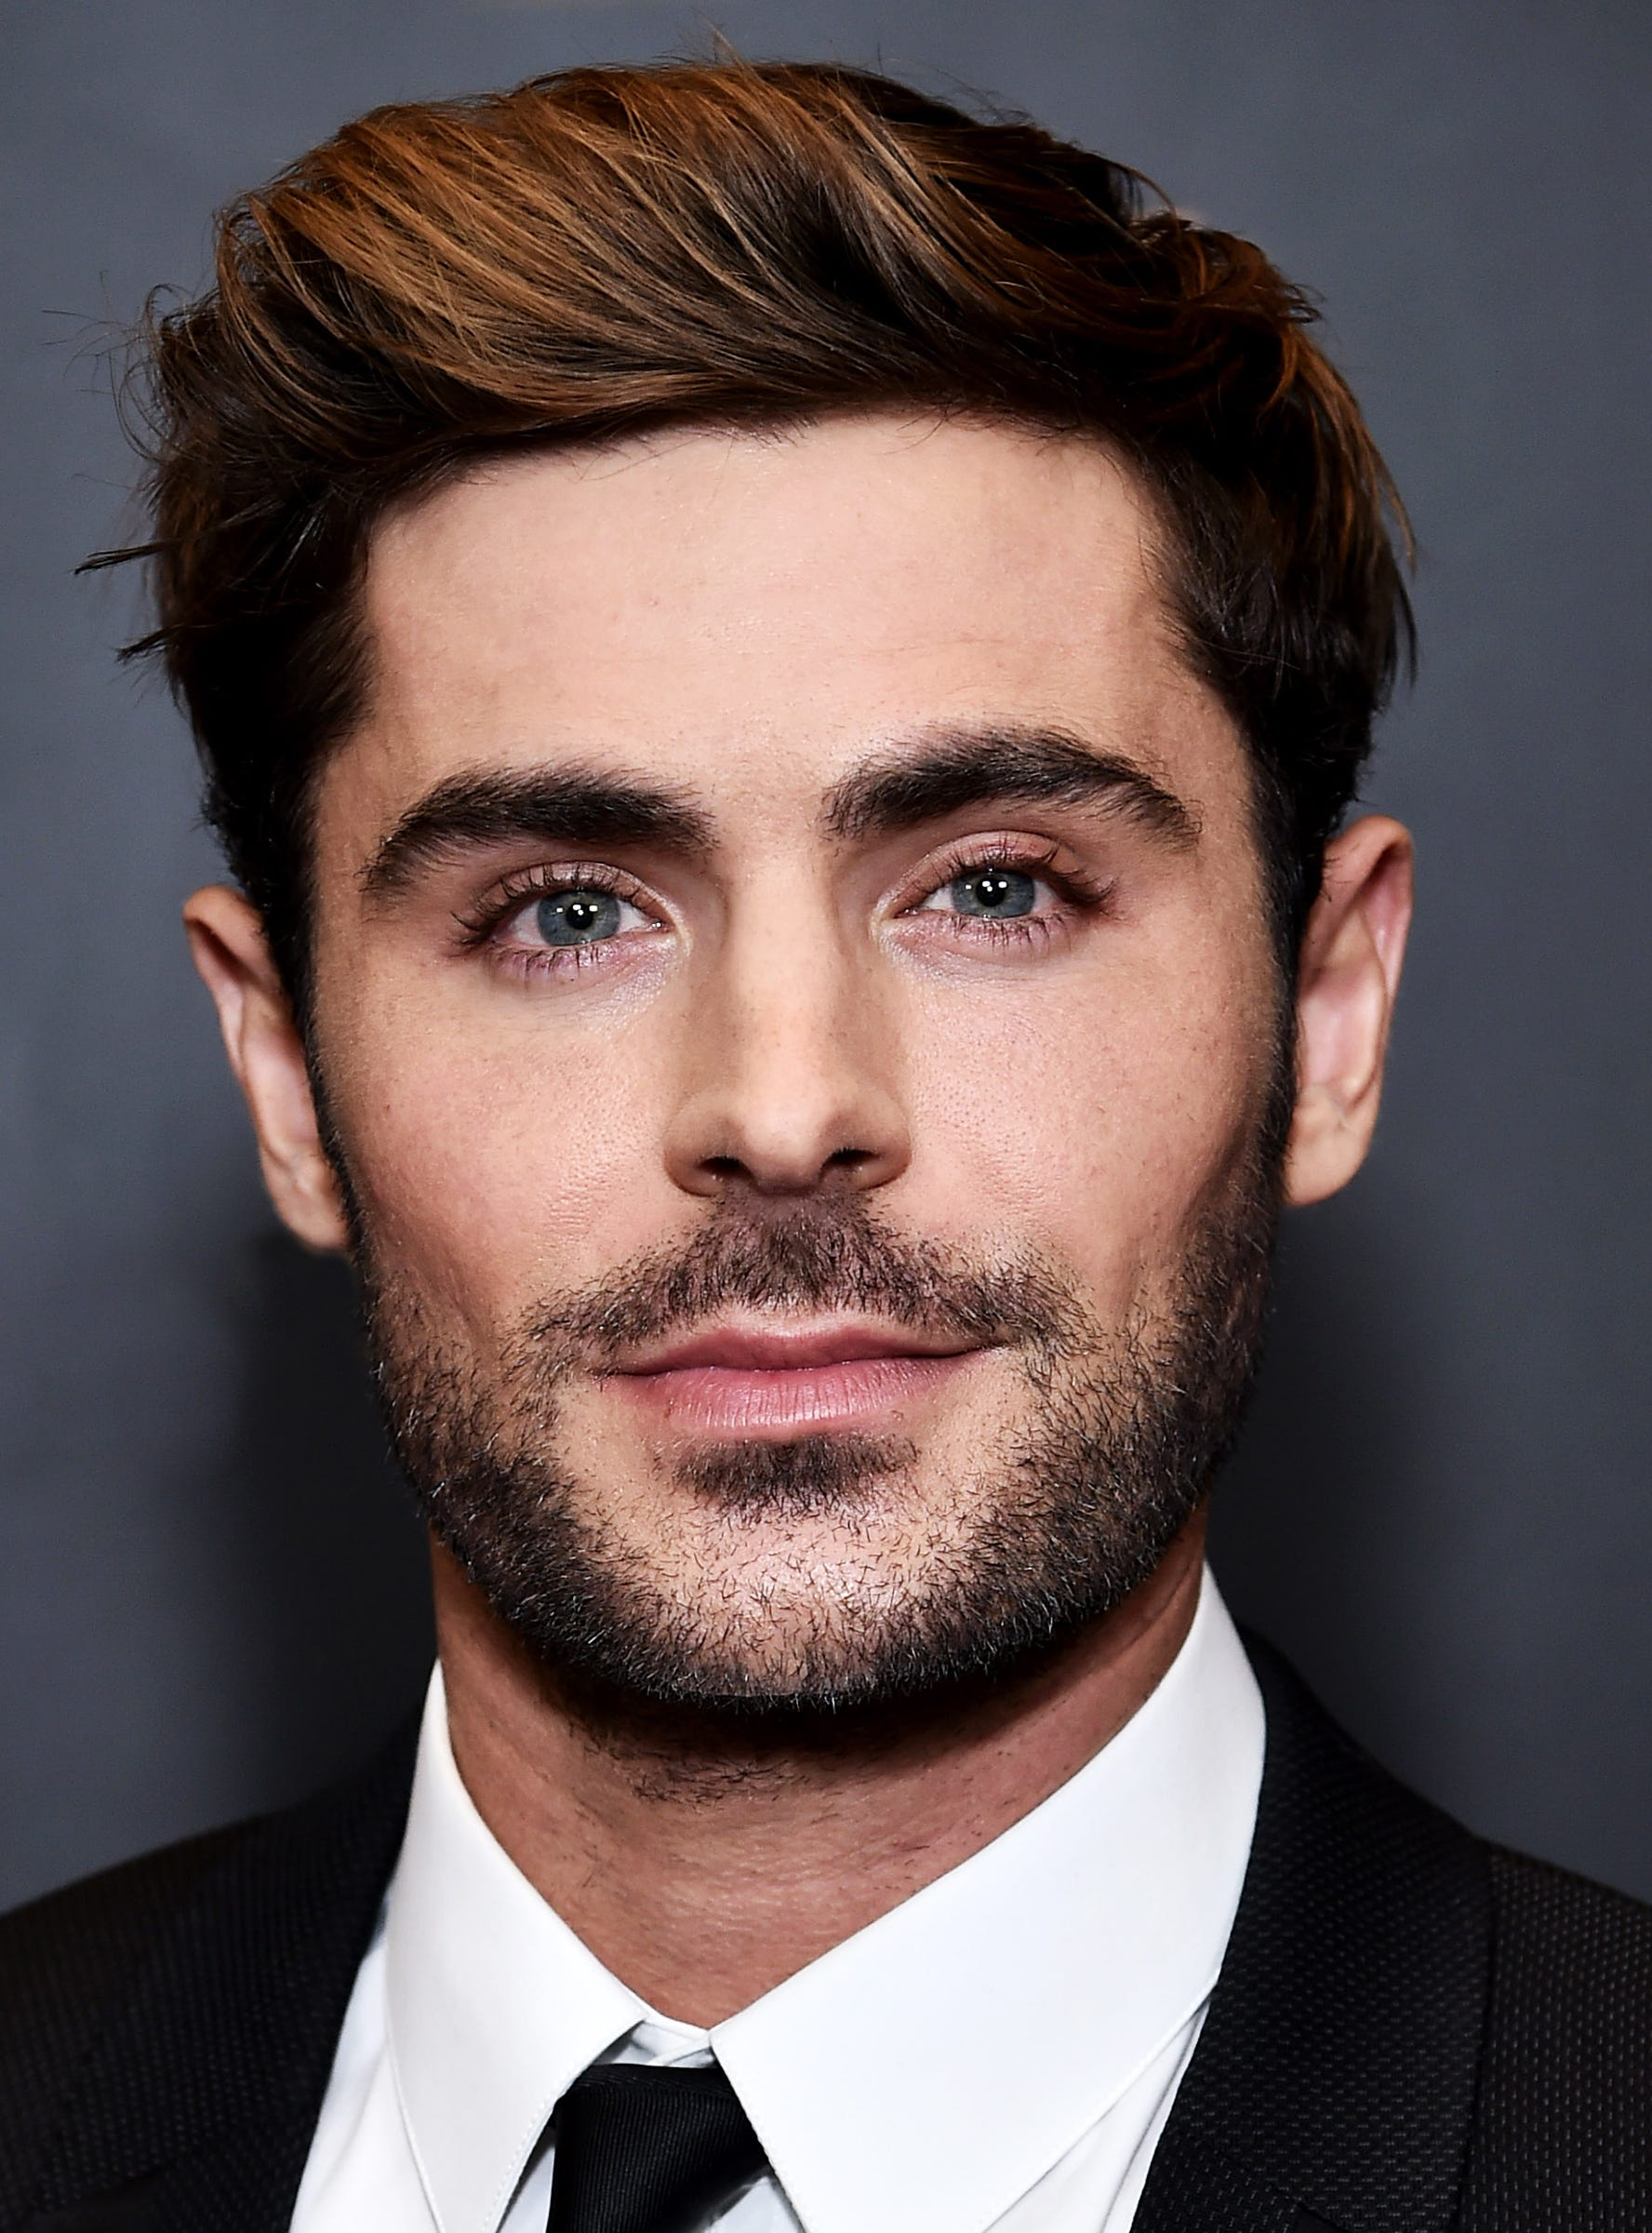 Zac efron lookalike jaunce ponce real or fake instagram